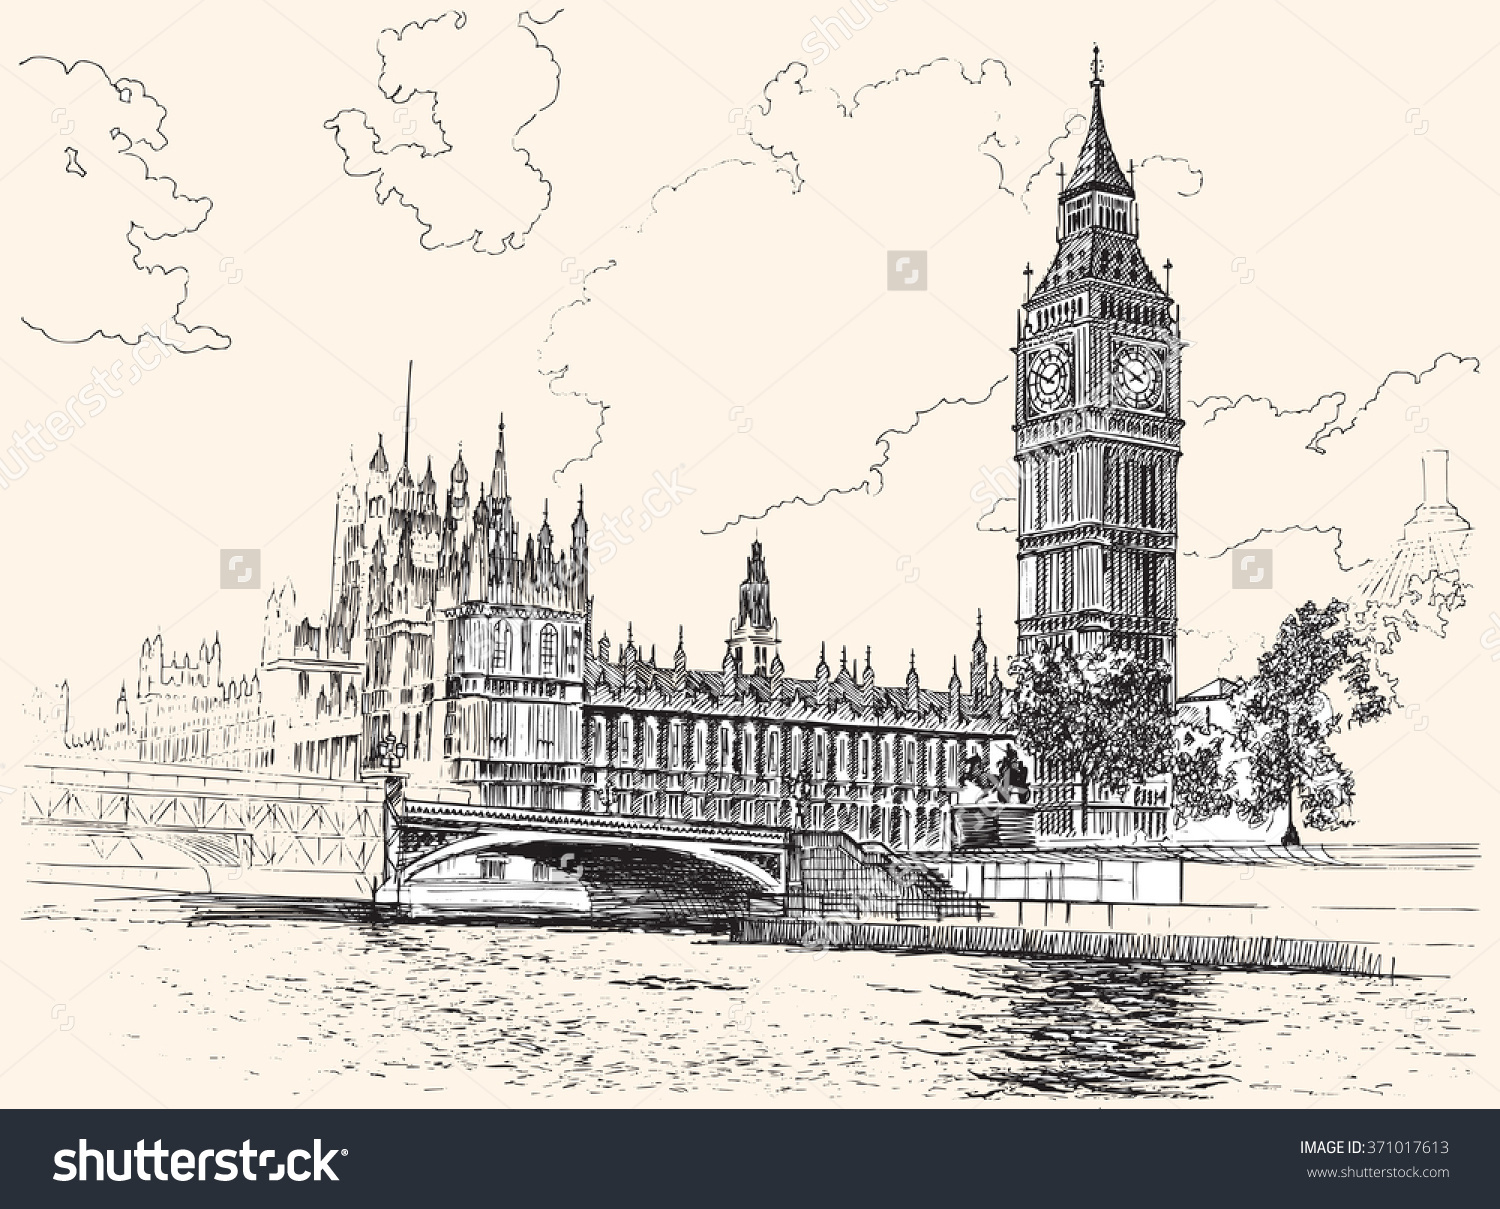 1500x1209 Big Ben And Houses Of Parliament, Westminster, London, Hand